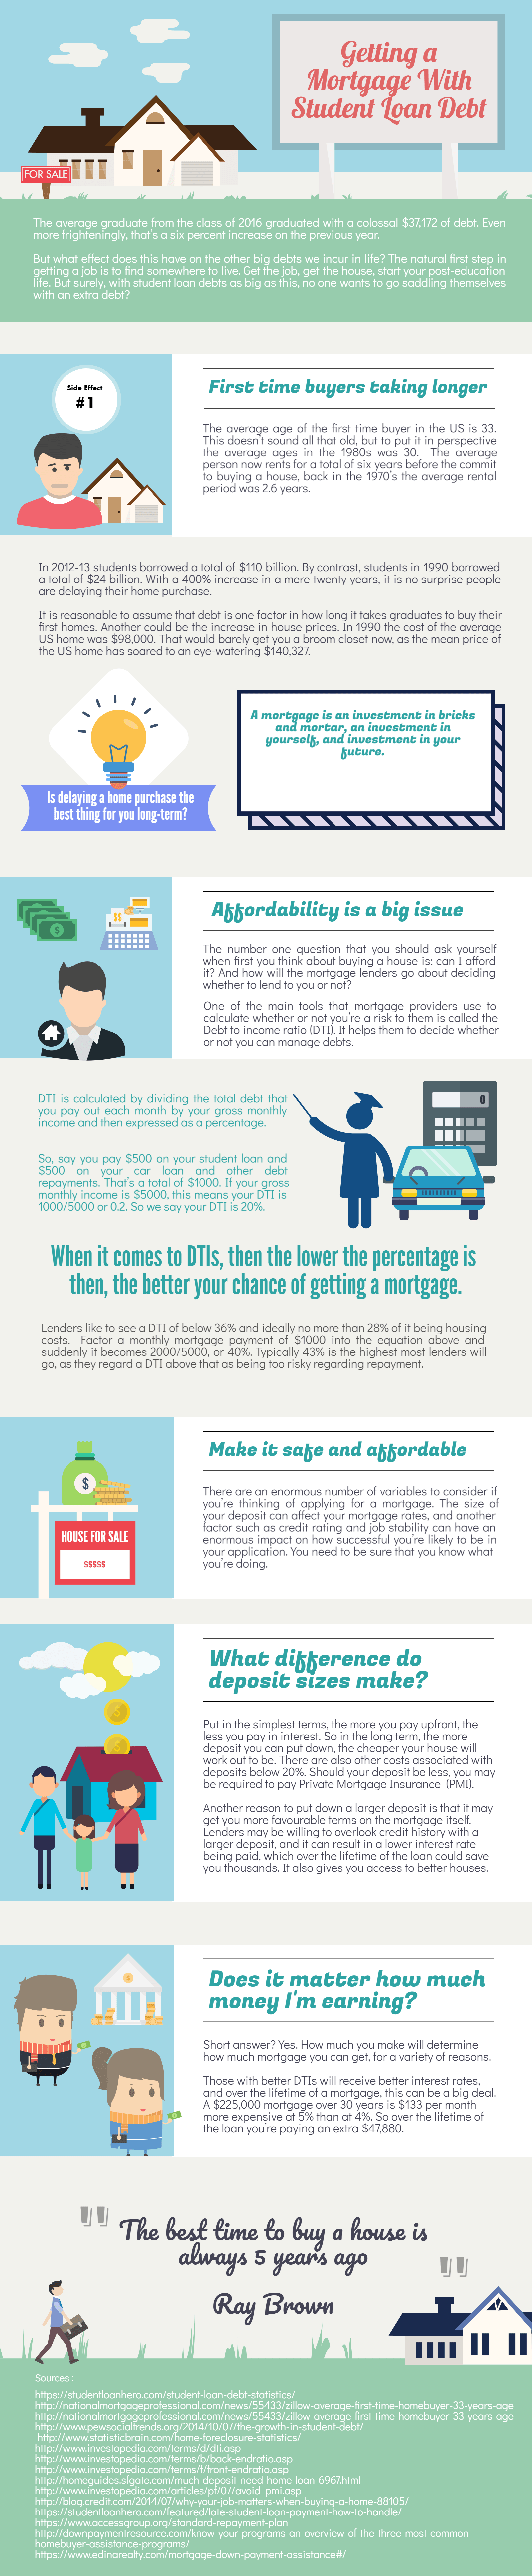 Getting a Mortgage with Student Loan Debt